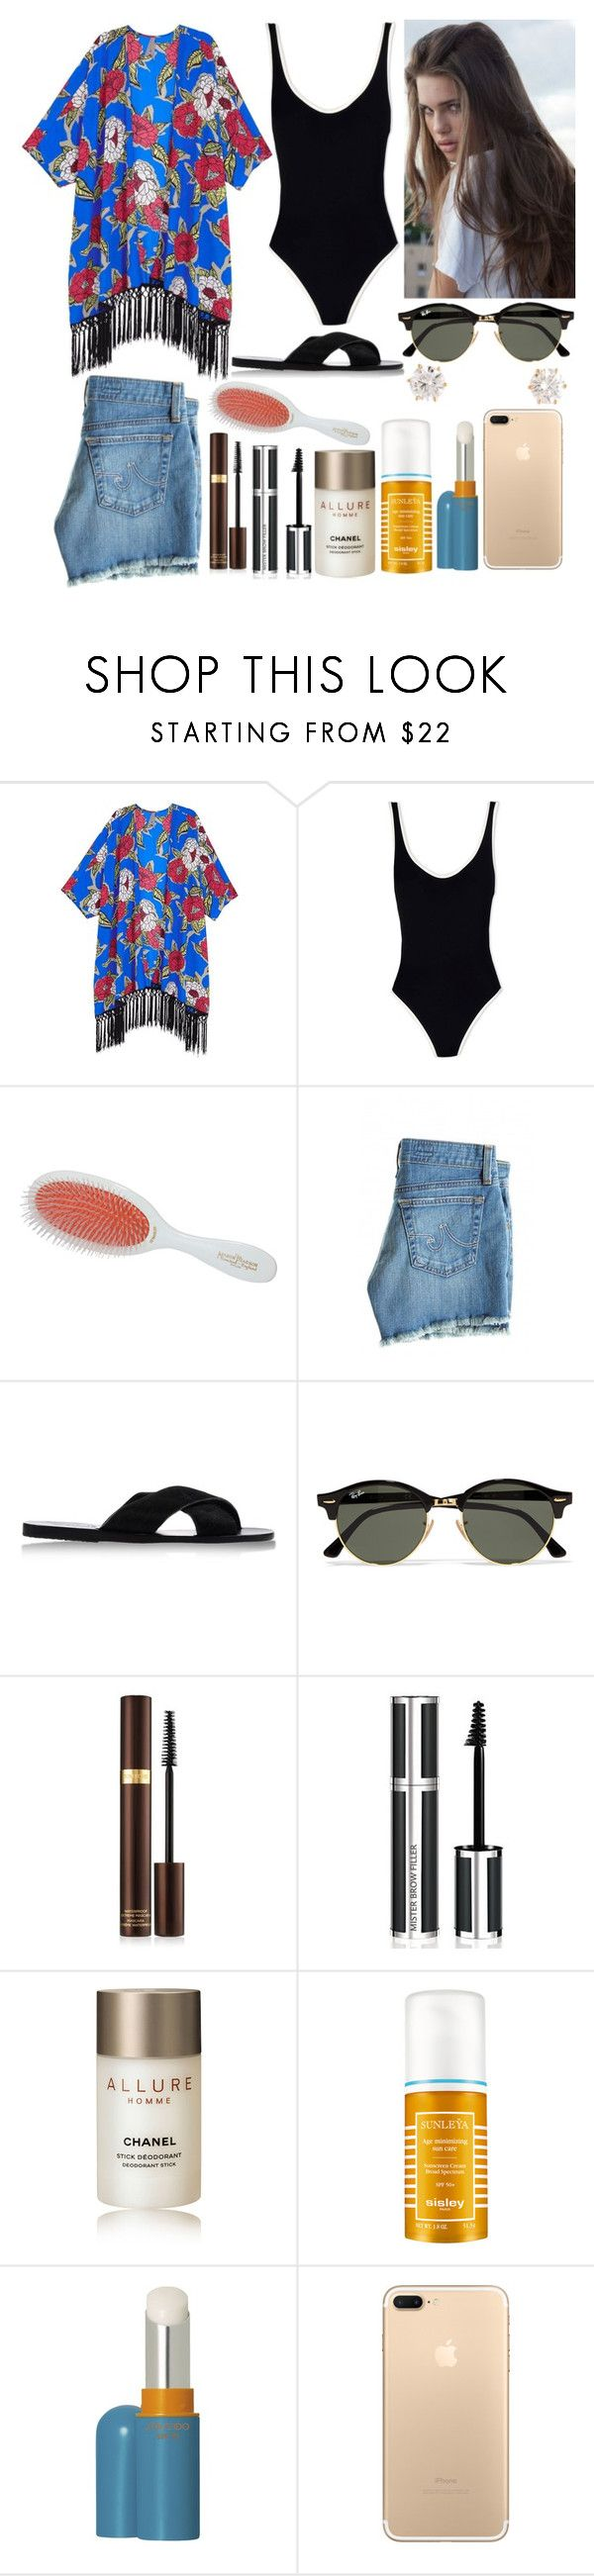 """Beach Date"" by jacie ❤ liked on Polyvore featuring Melissa McCarthy Seven7, Solid & Striped, Mason Pearson, AG Adriano Goldschmied, Ancient Greek Sandals, Covo, Ray-Ban, Tom Ford, Givenchy and Chanel"